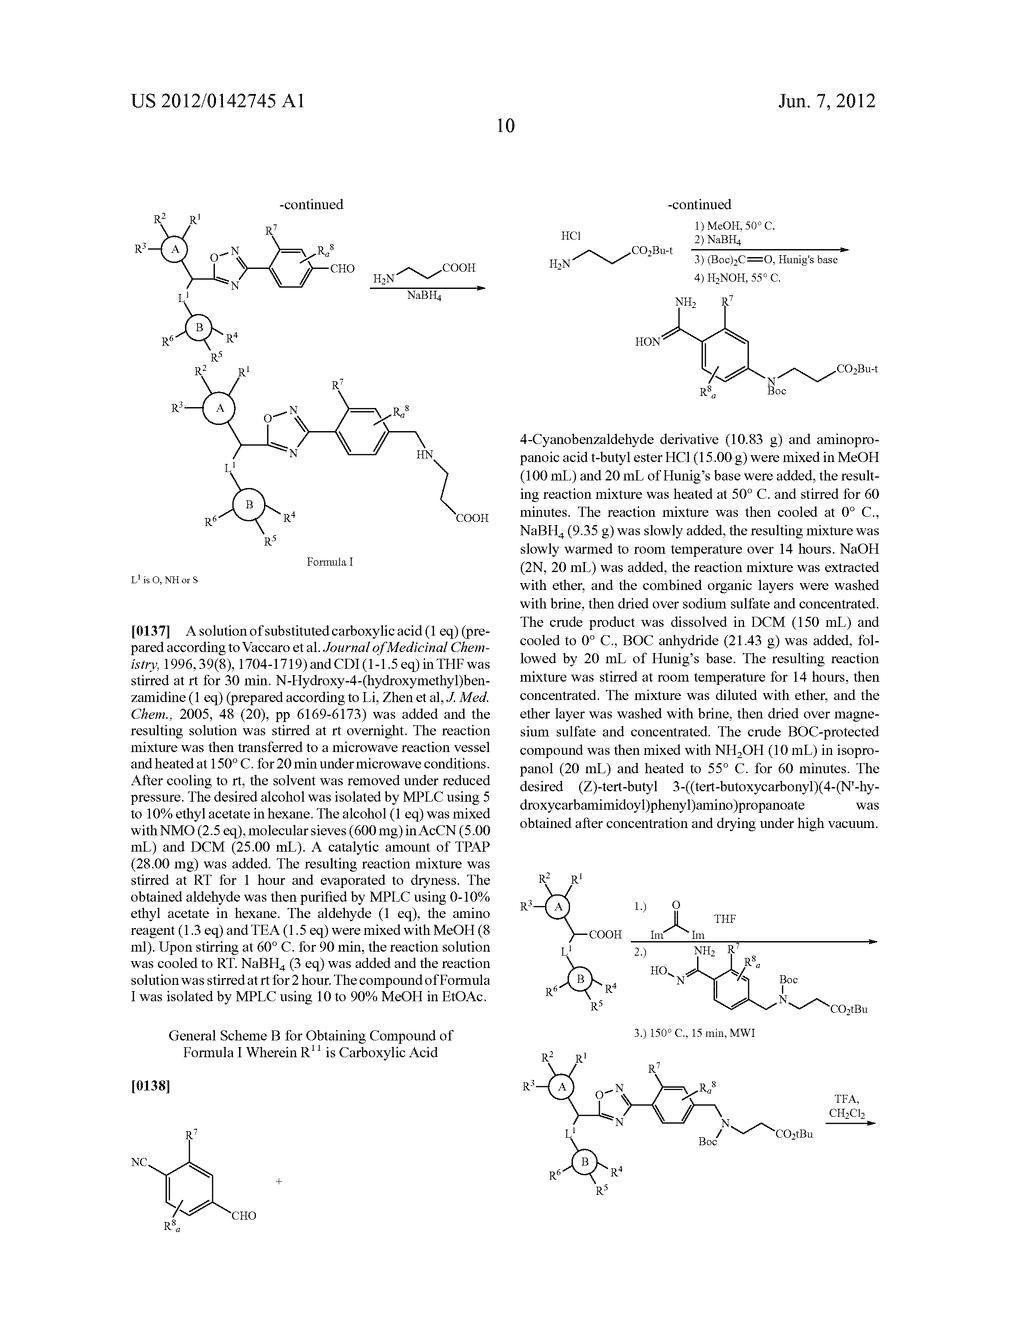 NOVEL PHENYL OXADIAZOLE DERIVATIVES AS SPHINGOSINE 1-PHOSPHATE (S1P)     RECEPTOR MODULATORS - diagram, schematic, and image 11